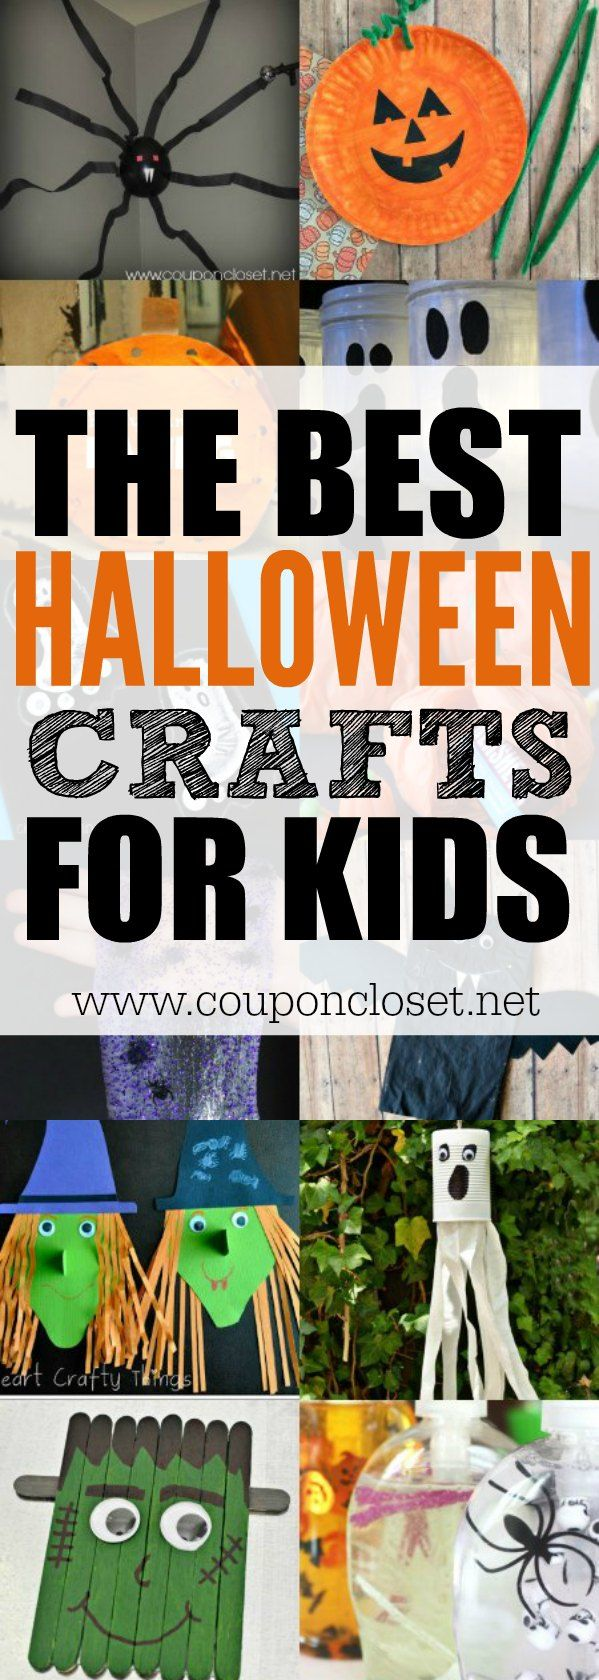 Try some of these easy halloween crafts for kids. Frugal halloween crafts for kids are fun for all ages. Our favorite halloween activities for children.                                                                                                                                                                                 More